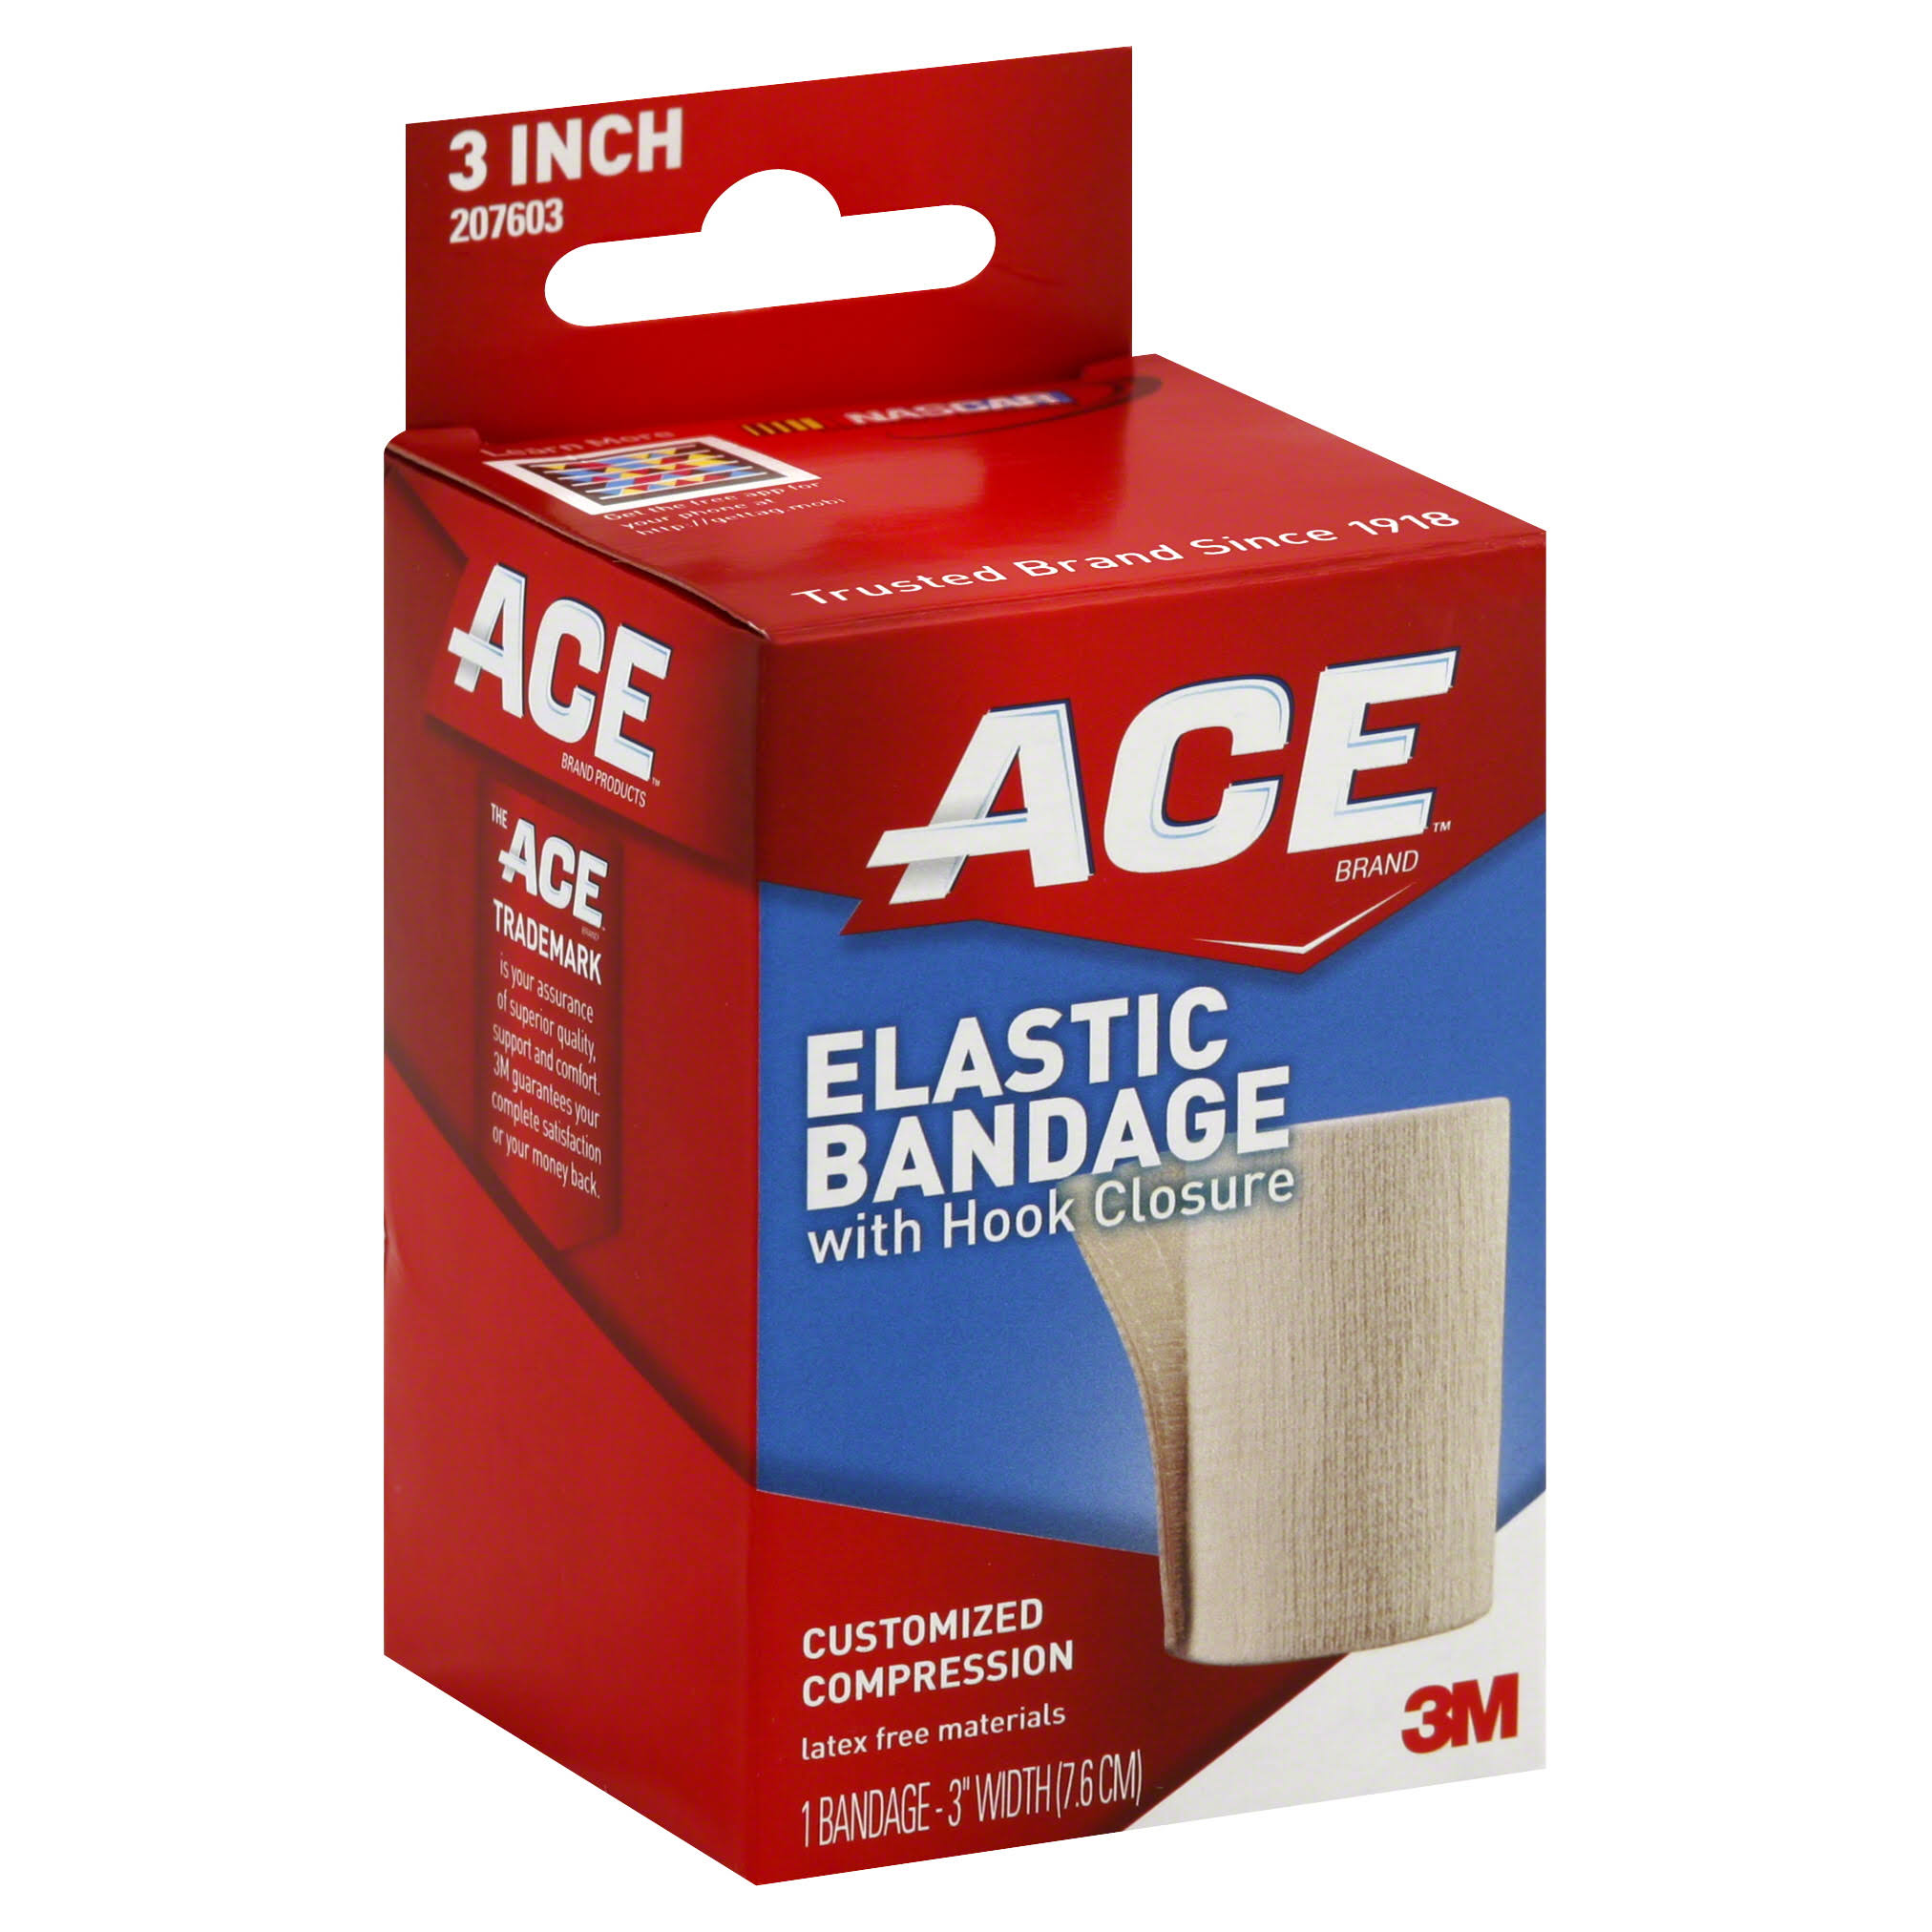 "Ace Elastic Bandage with Hook Closure - 3"", 2pk"